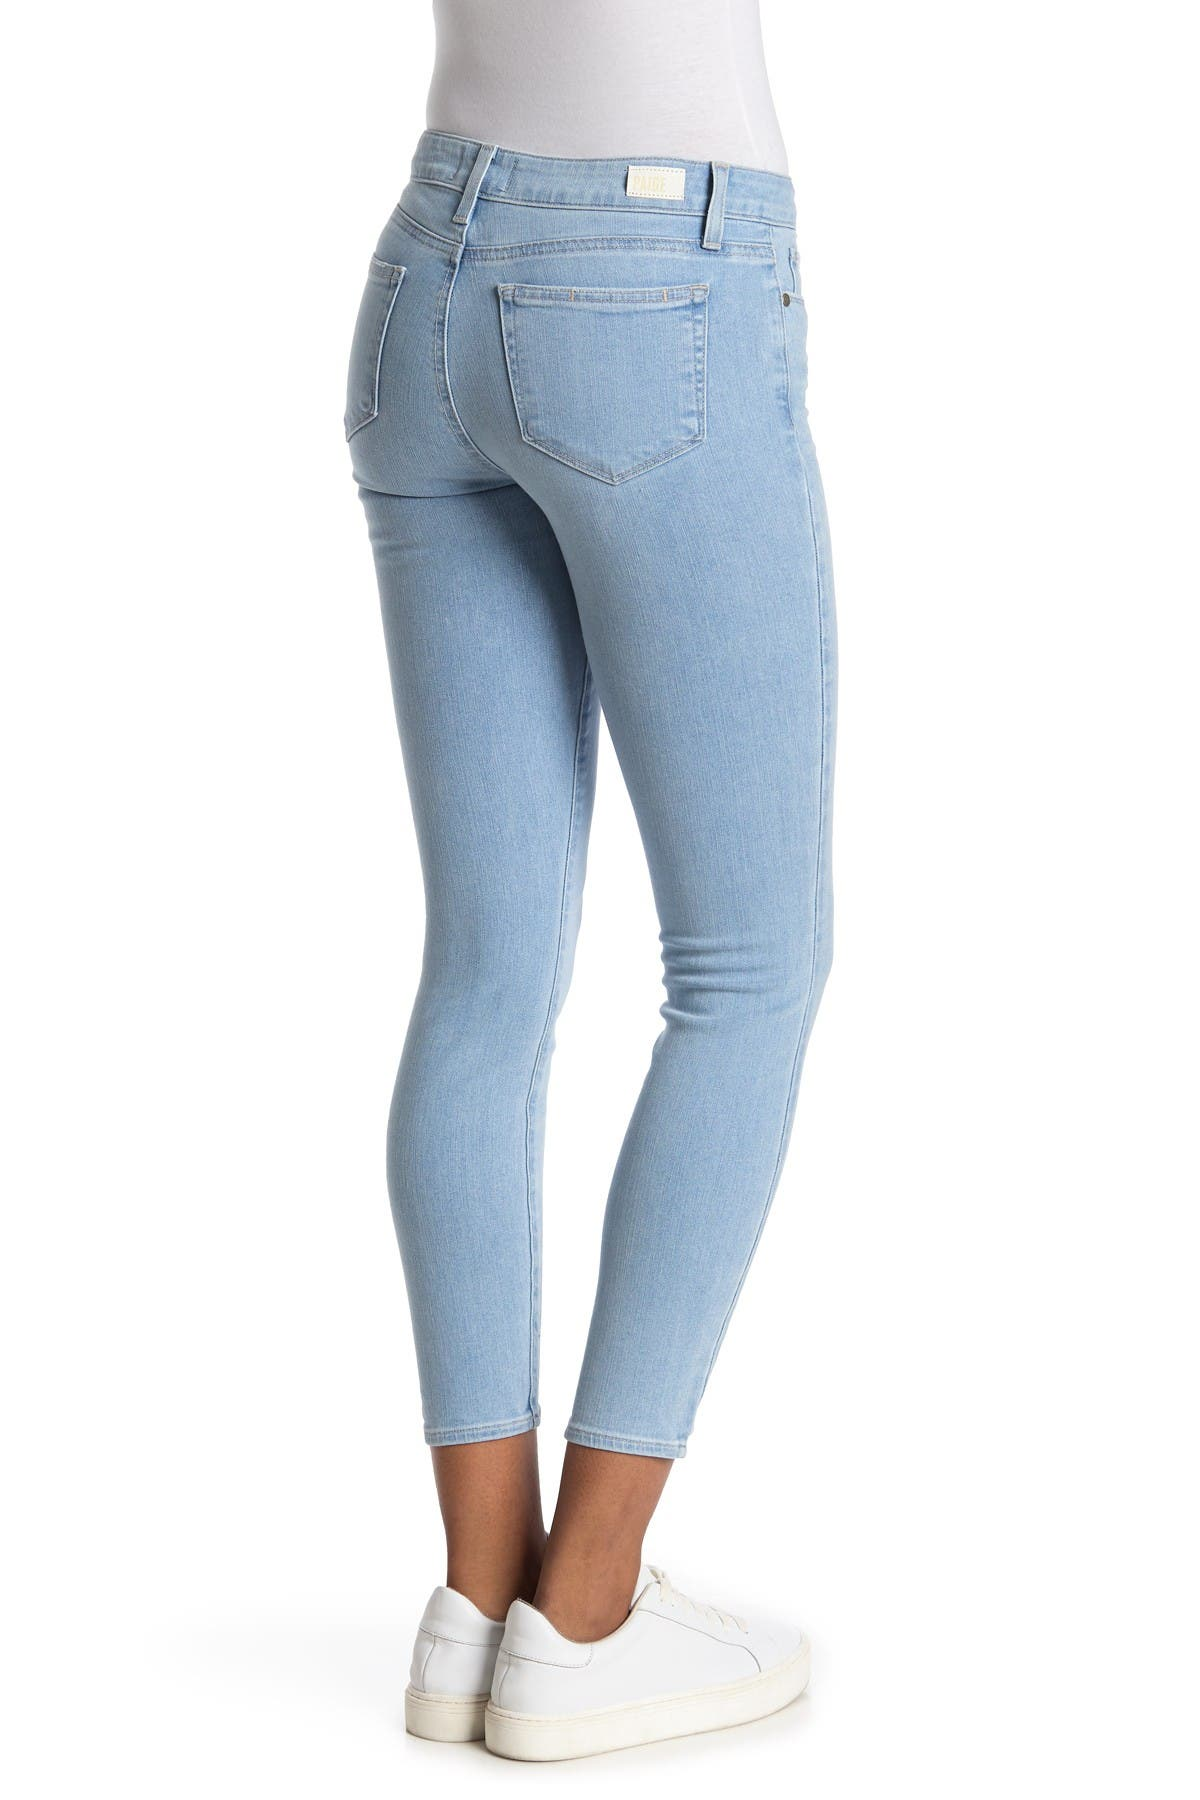 Image of PAIGE Verdugo Ankle Skinny Jeans